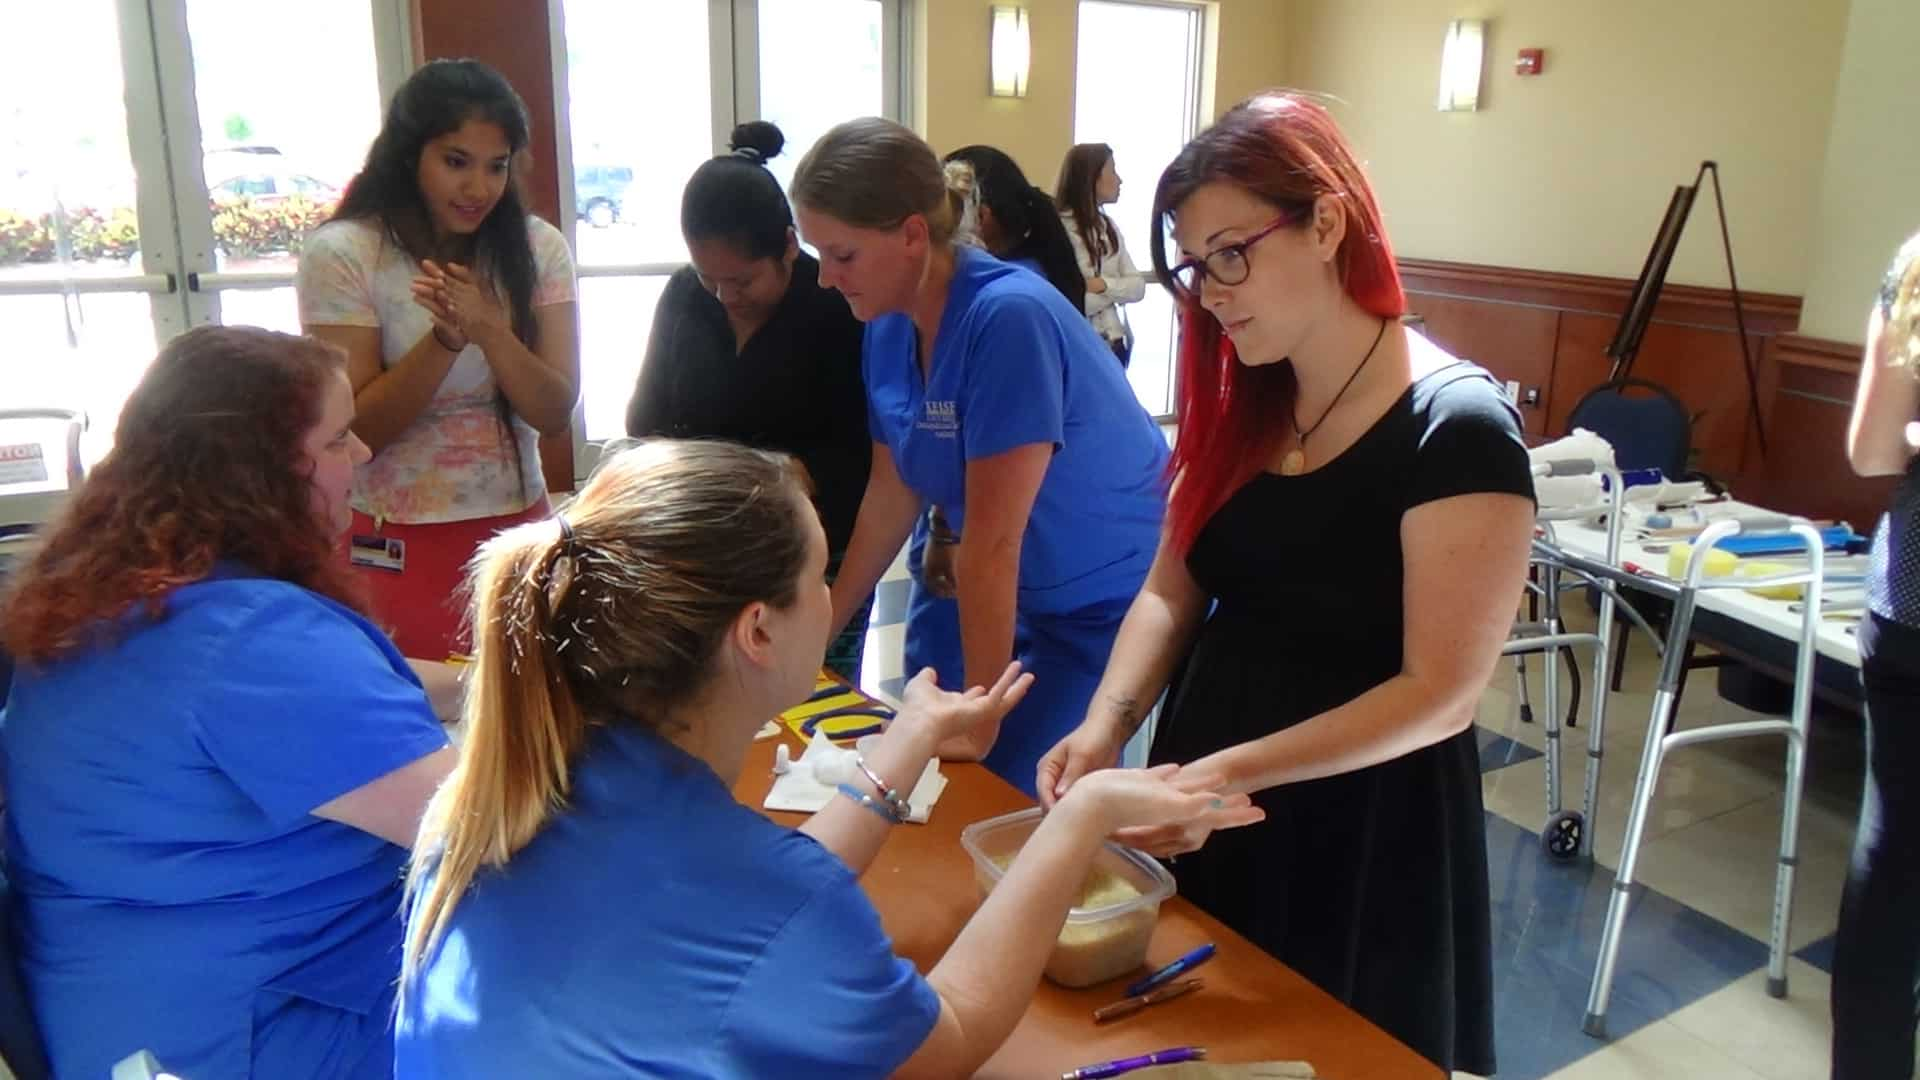 Fort Myers OTA Students Host Occupational Therapy Fair in Honor of Occupational Therapy Month